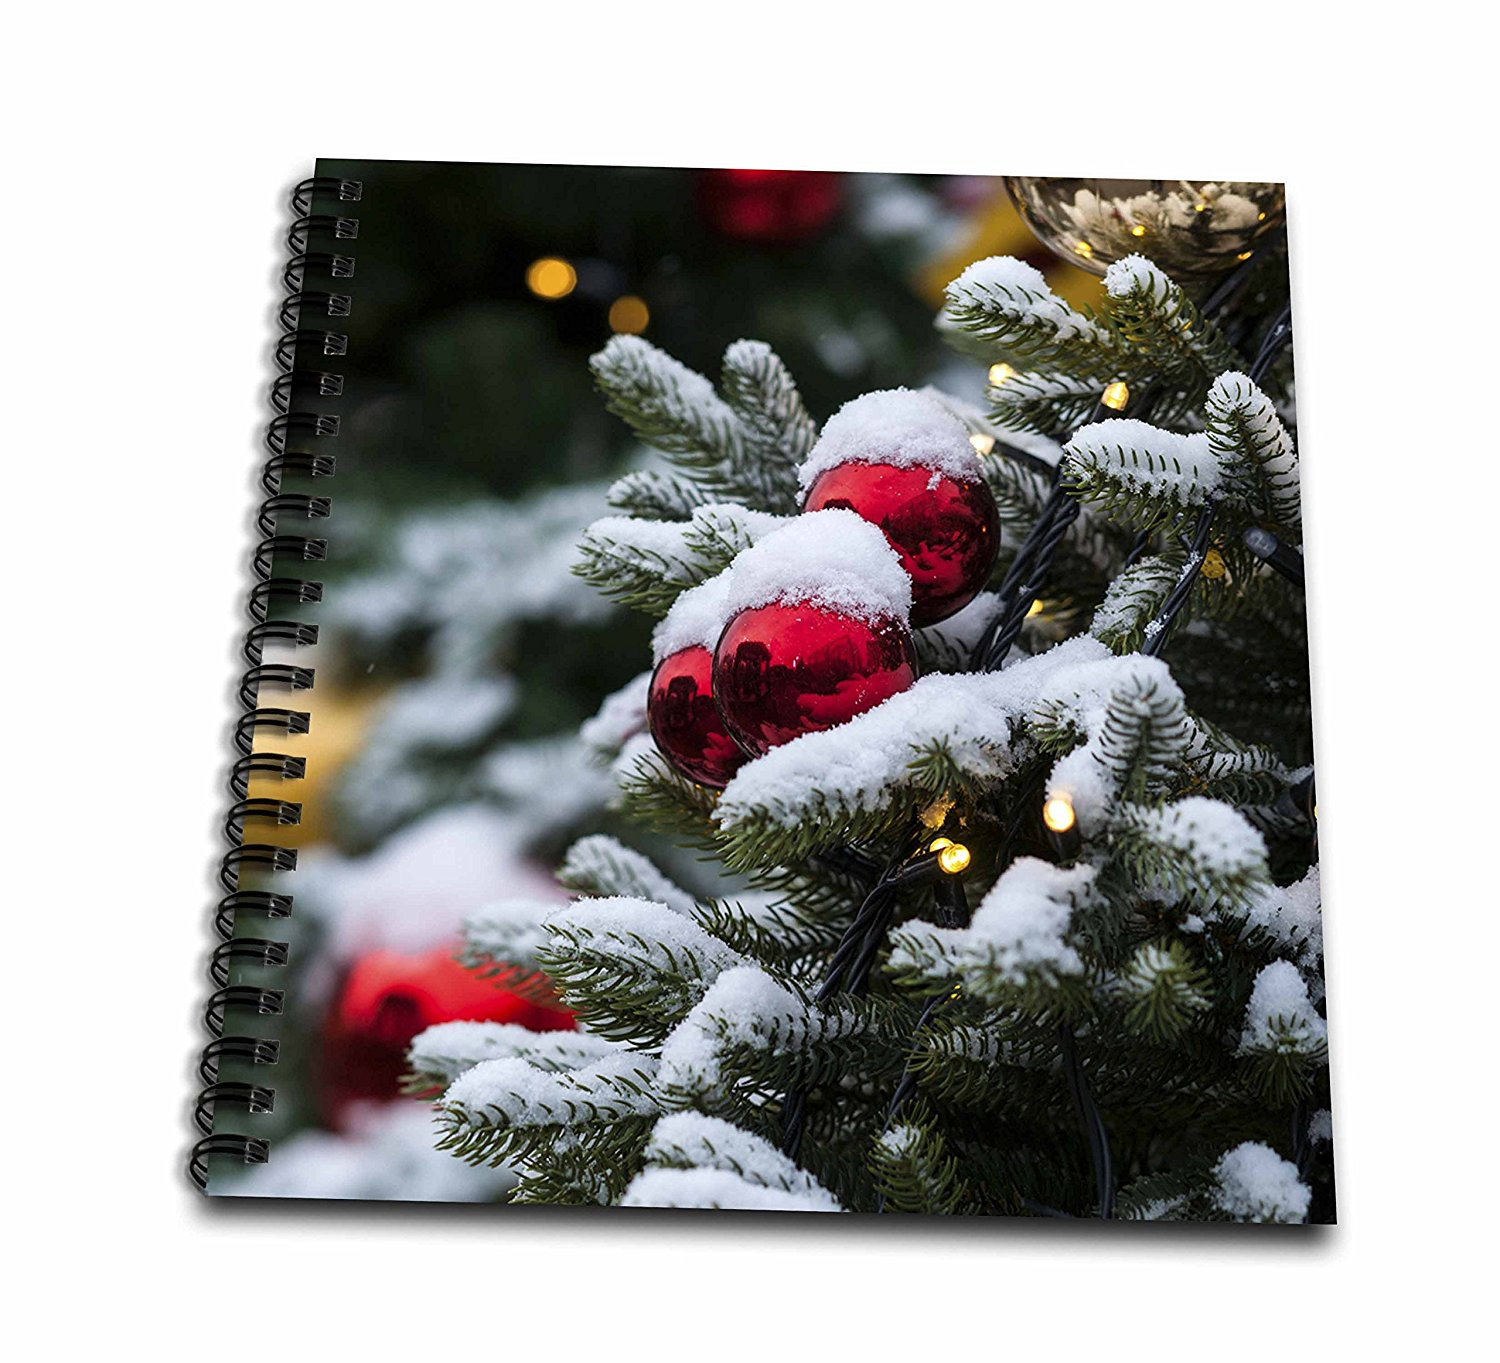 3dRose Alexis Photography - Holidays Christmas - Decorated Christmas tree covered with fresh snow. Lights, ornaments - Memory Book 12 x 12 inch (db_275960_2)